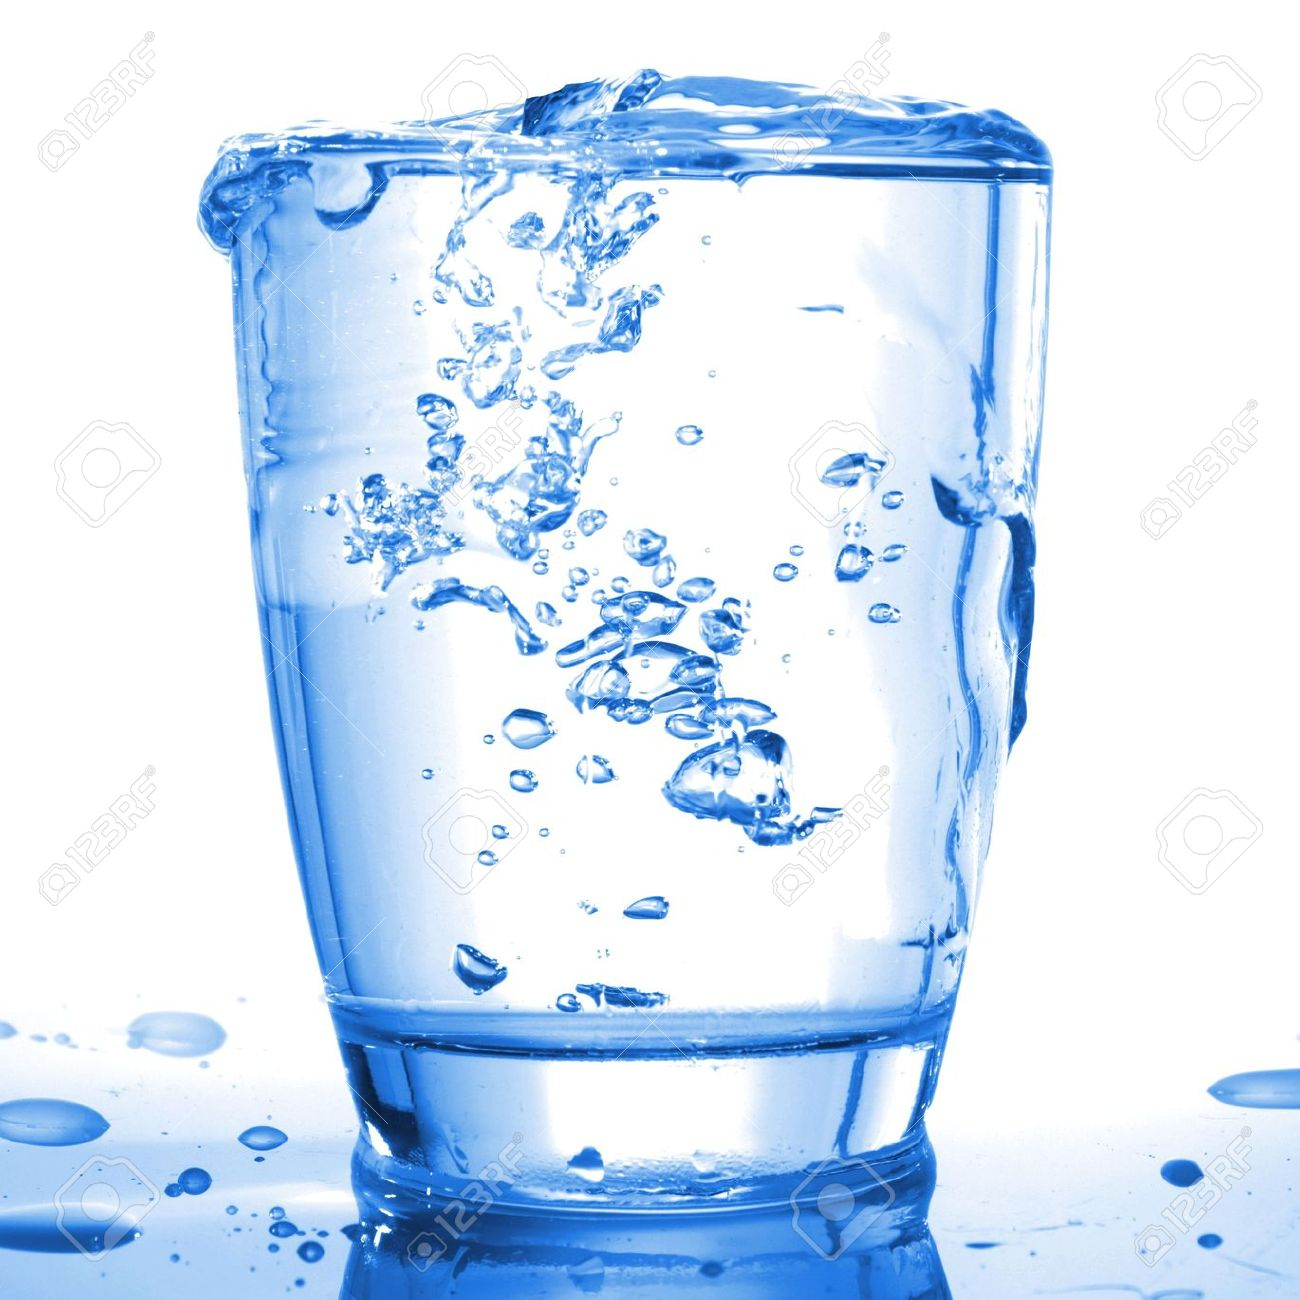 6347787-wellness-concept-with-glass-or-cup-of-water--Stock-Photo